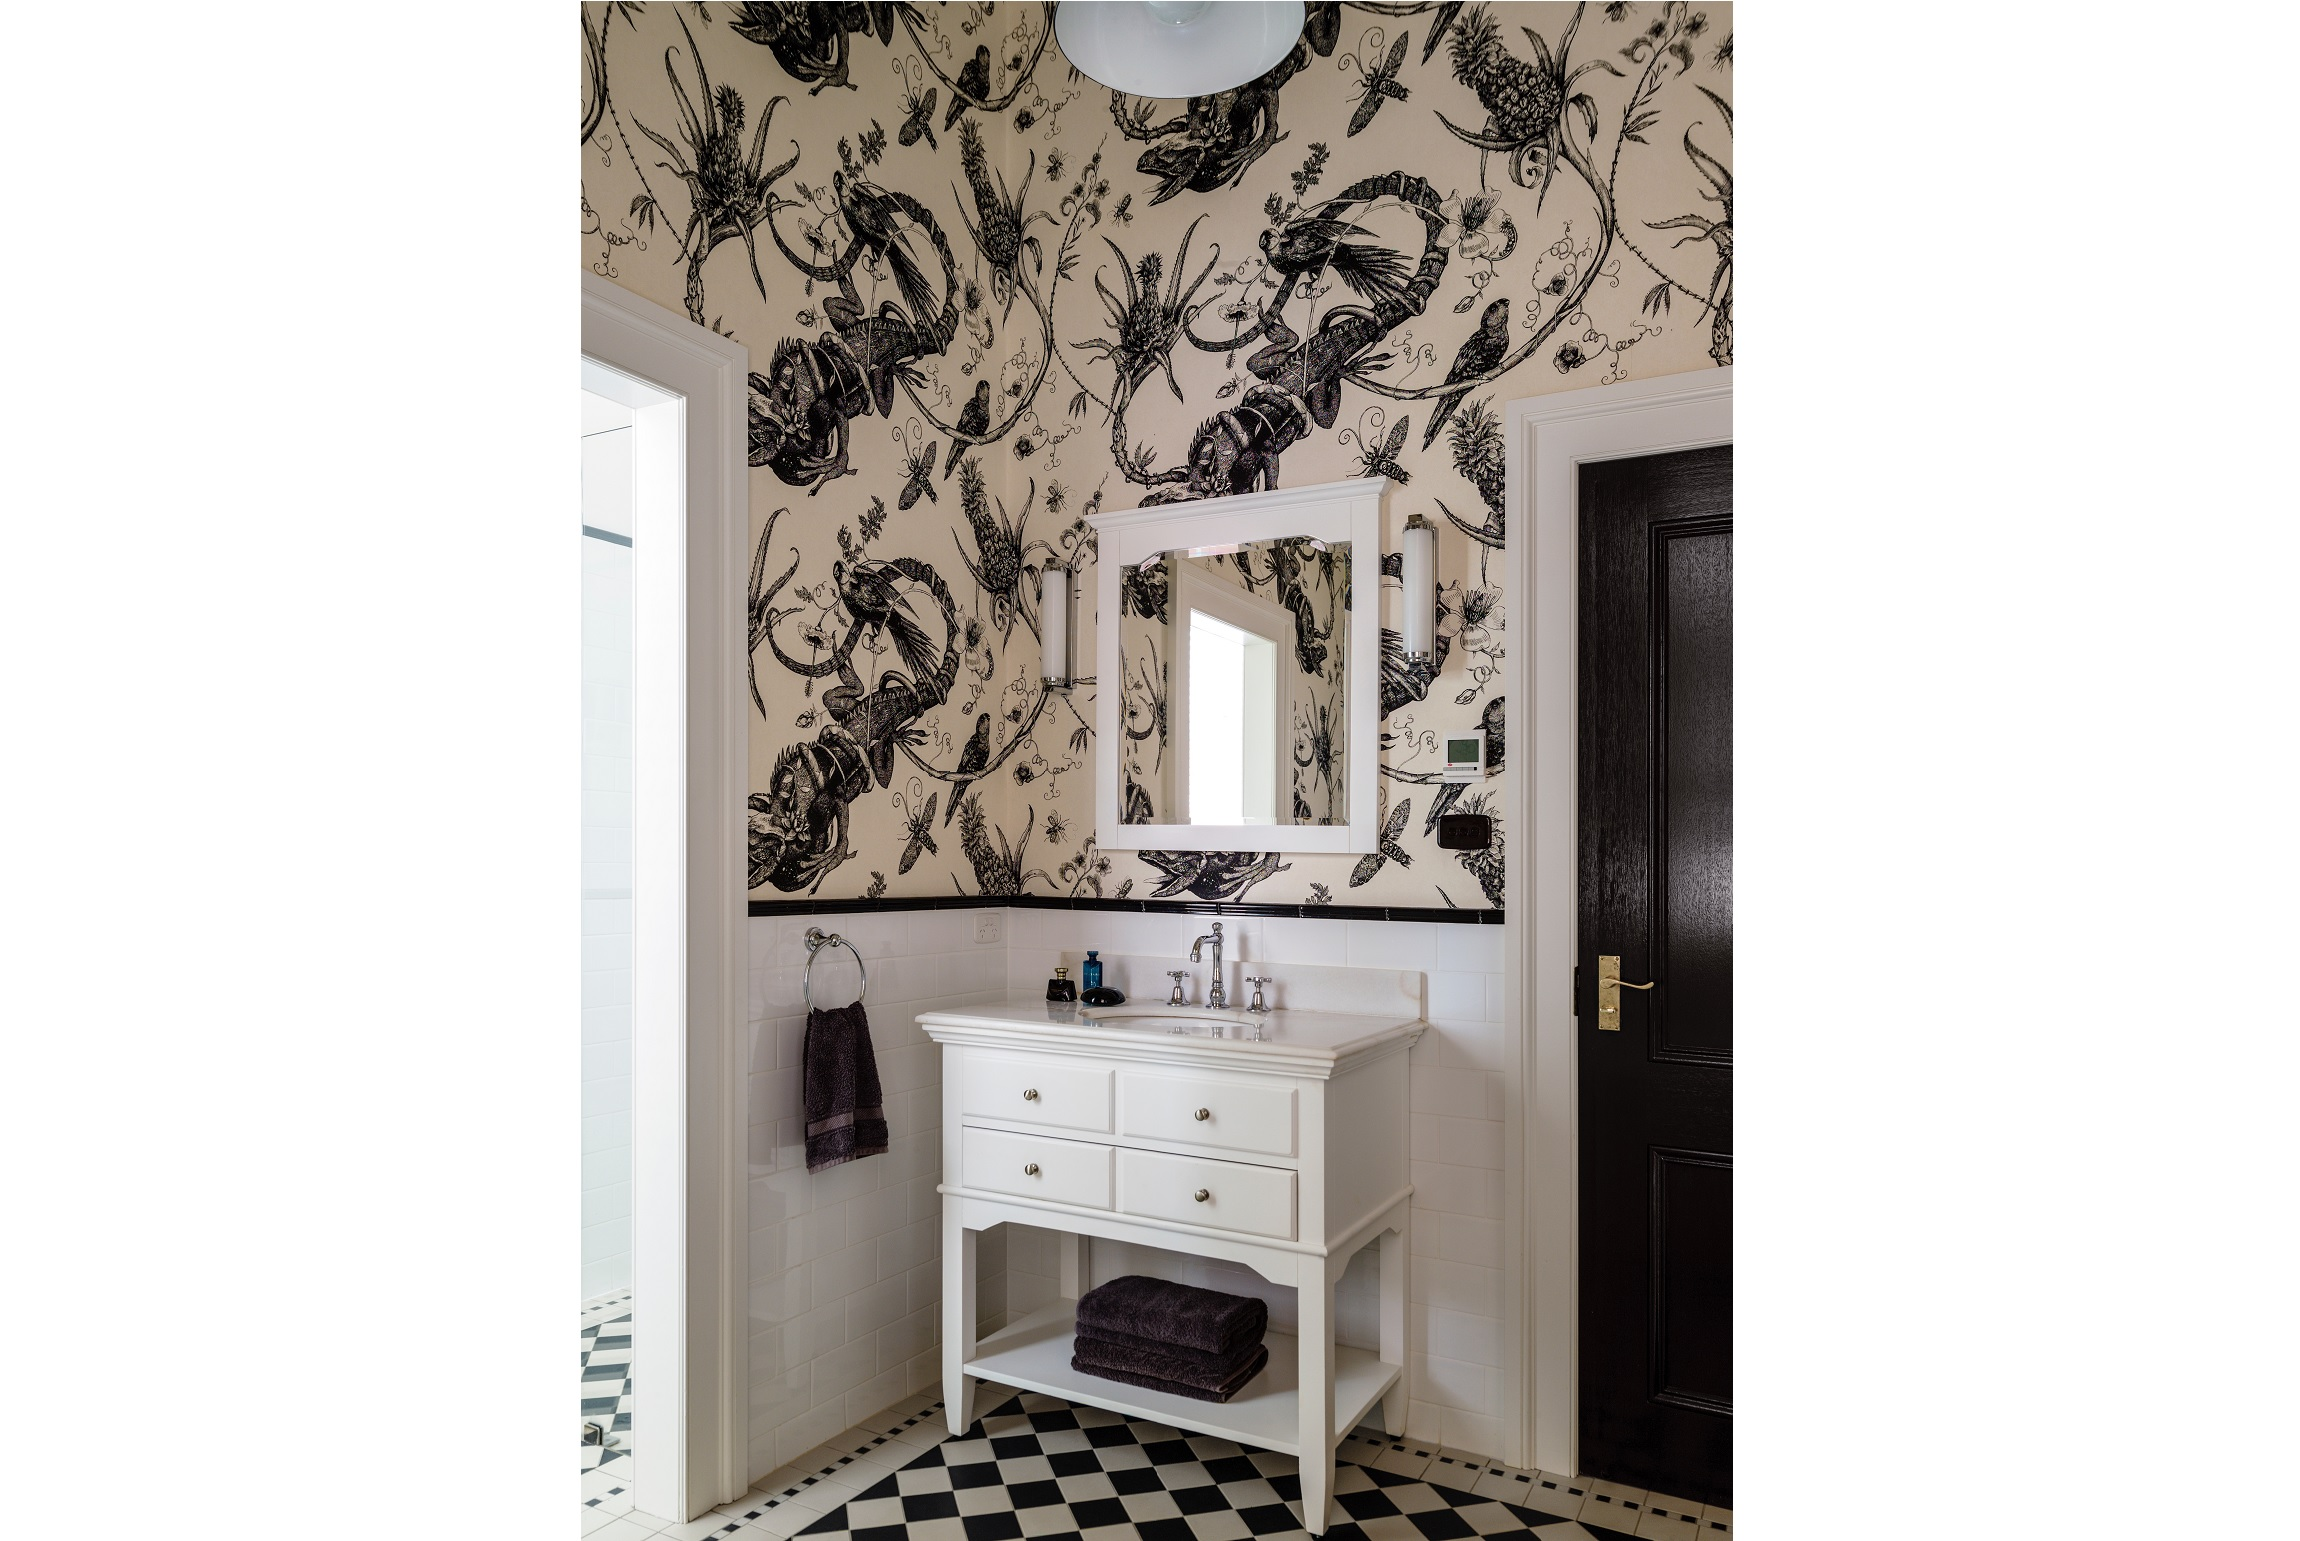 Leaves-Insects-Chamelion-Wallpaper-Country-Farmhouse-Australia-Michael-Bell-Architects